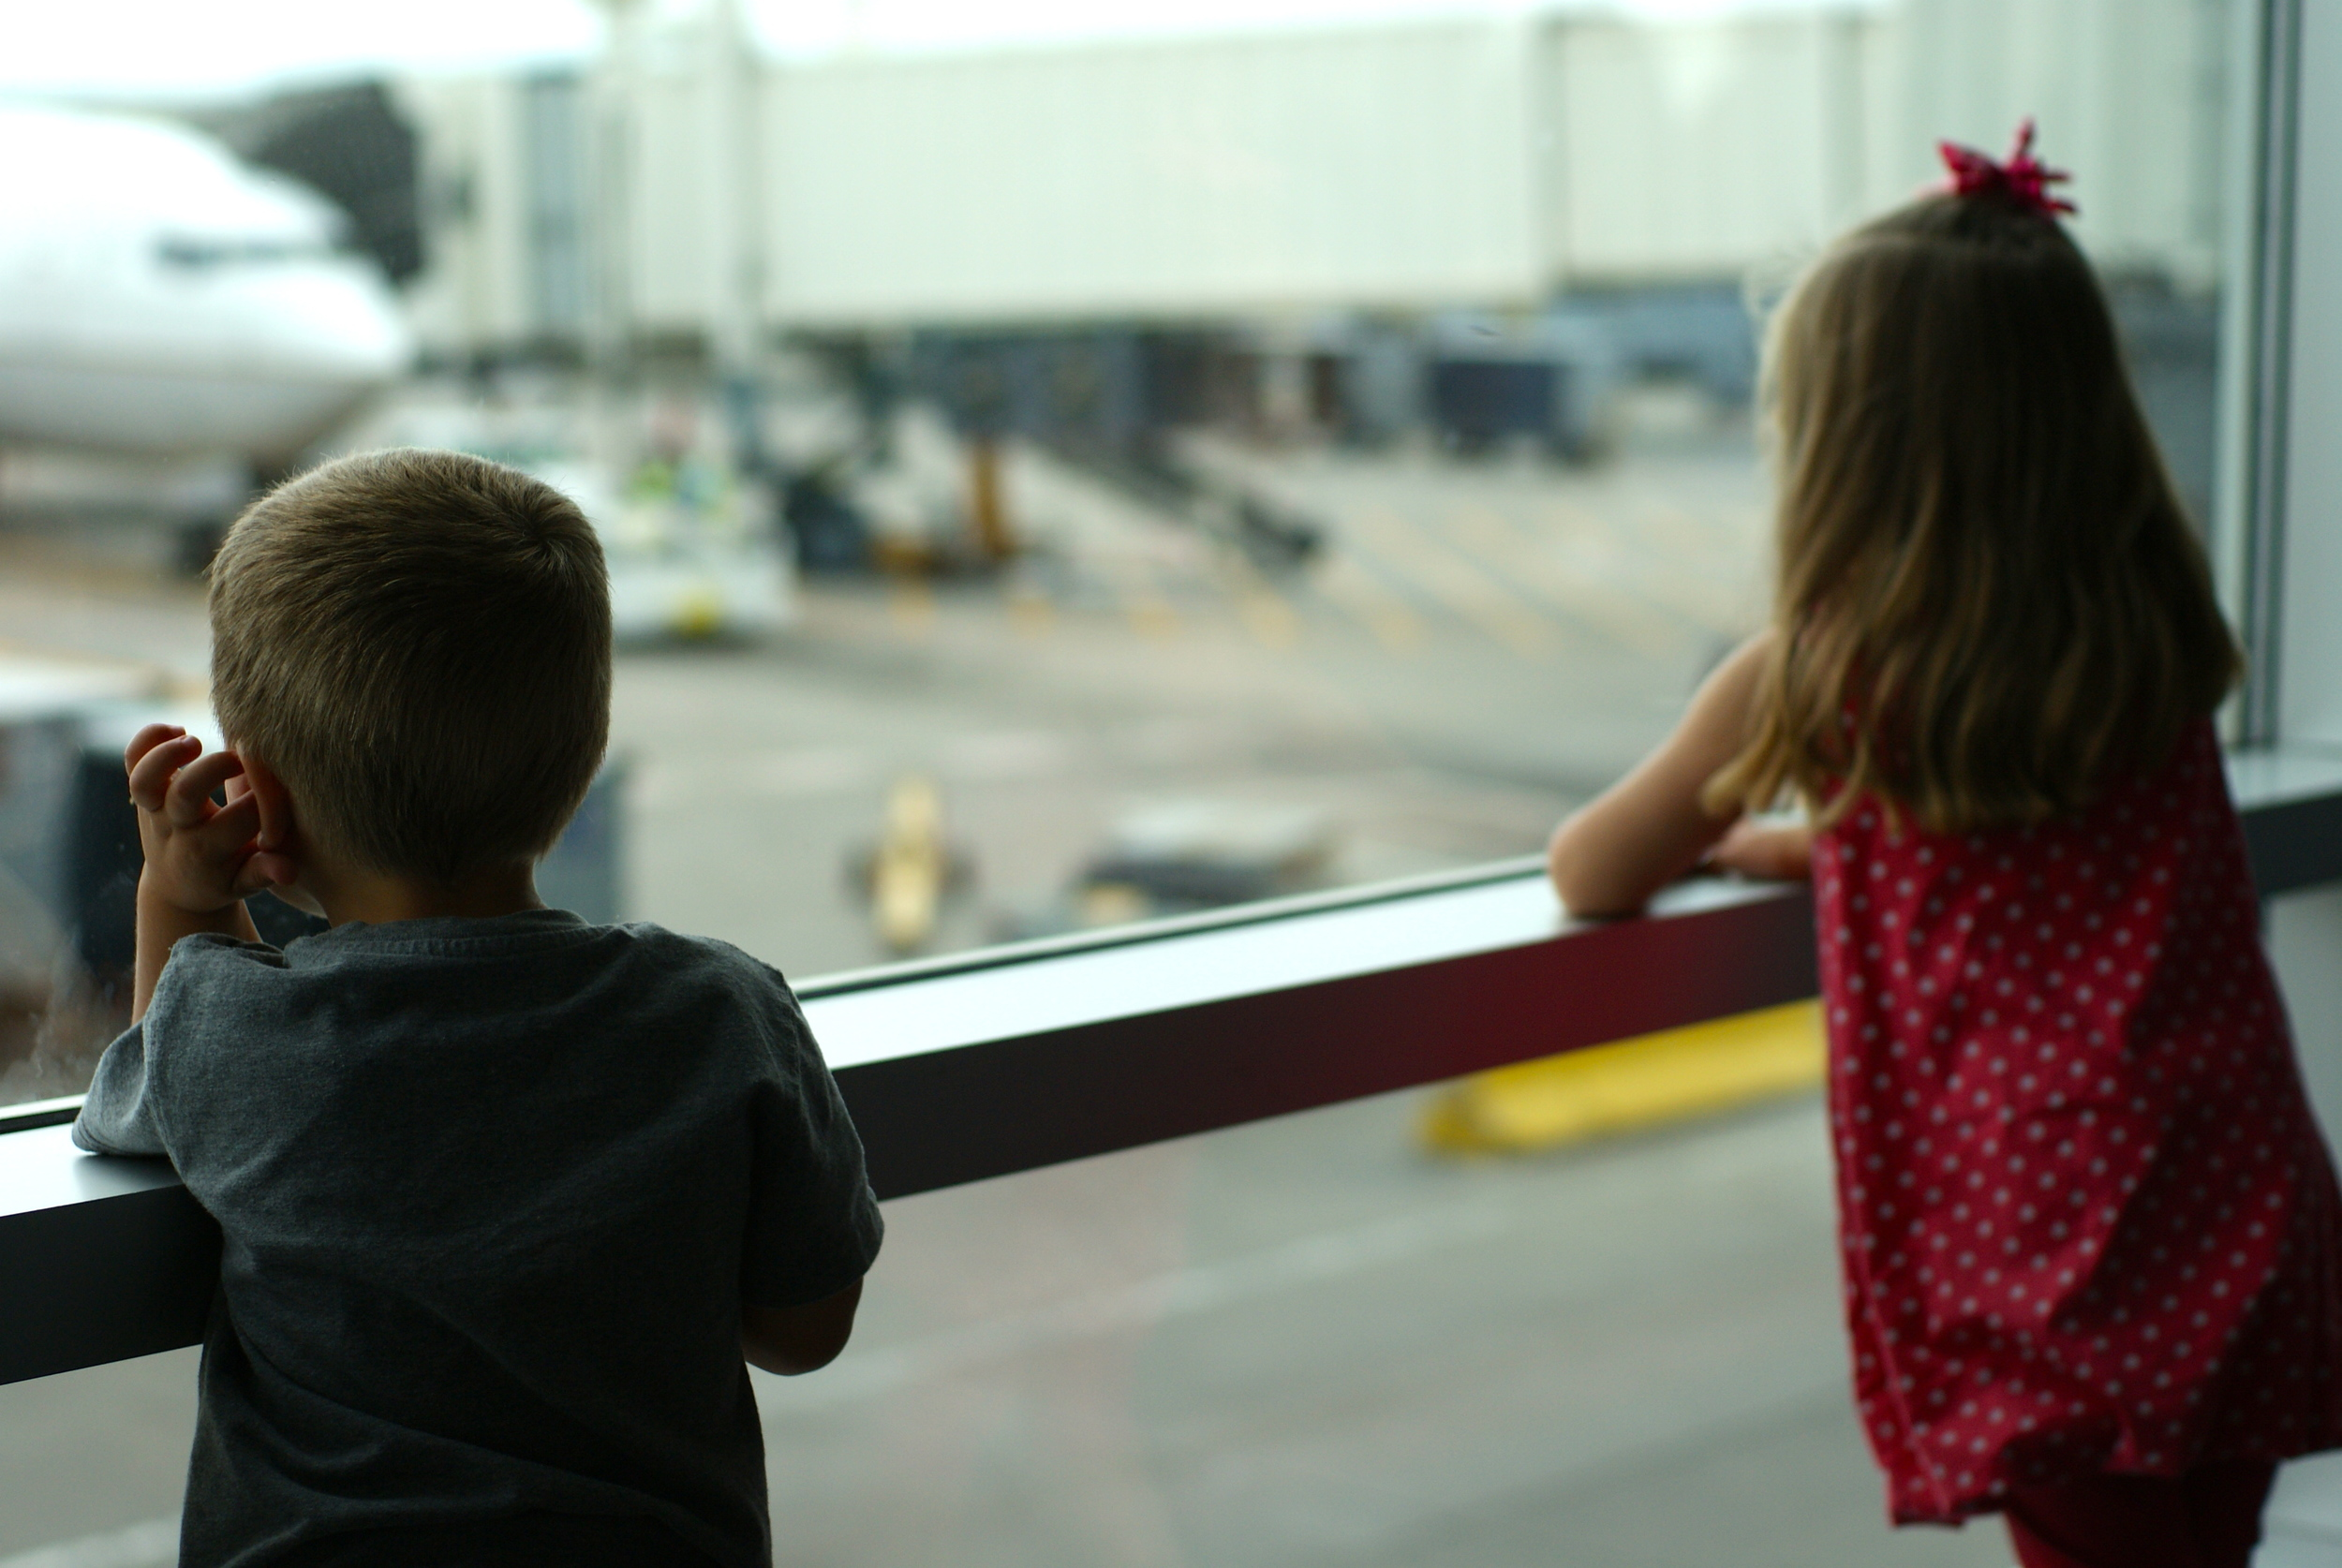 Watching the planes.